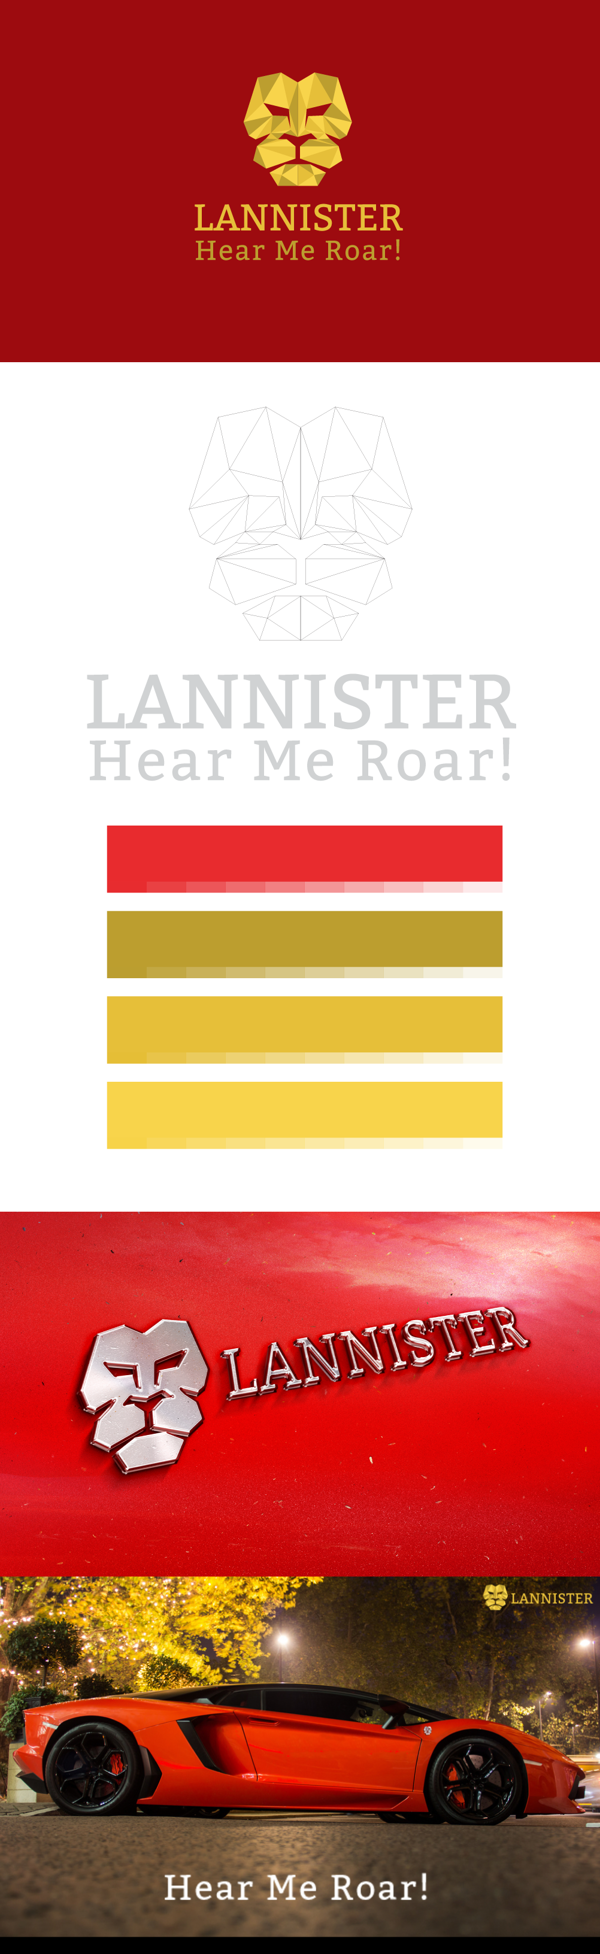 lannister-got-saint-barthelemy-le-news